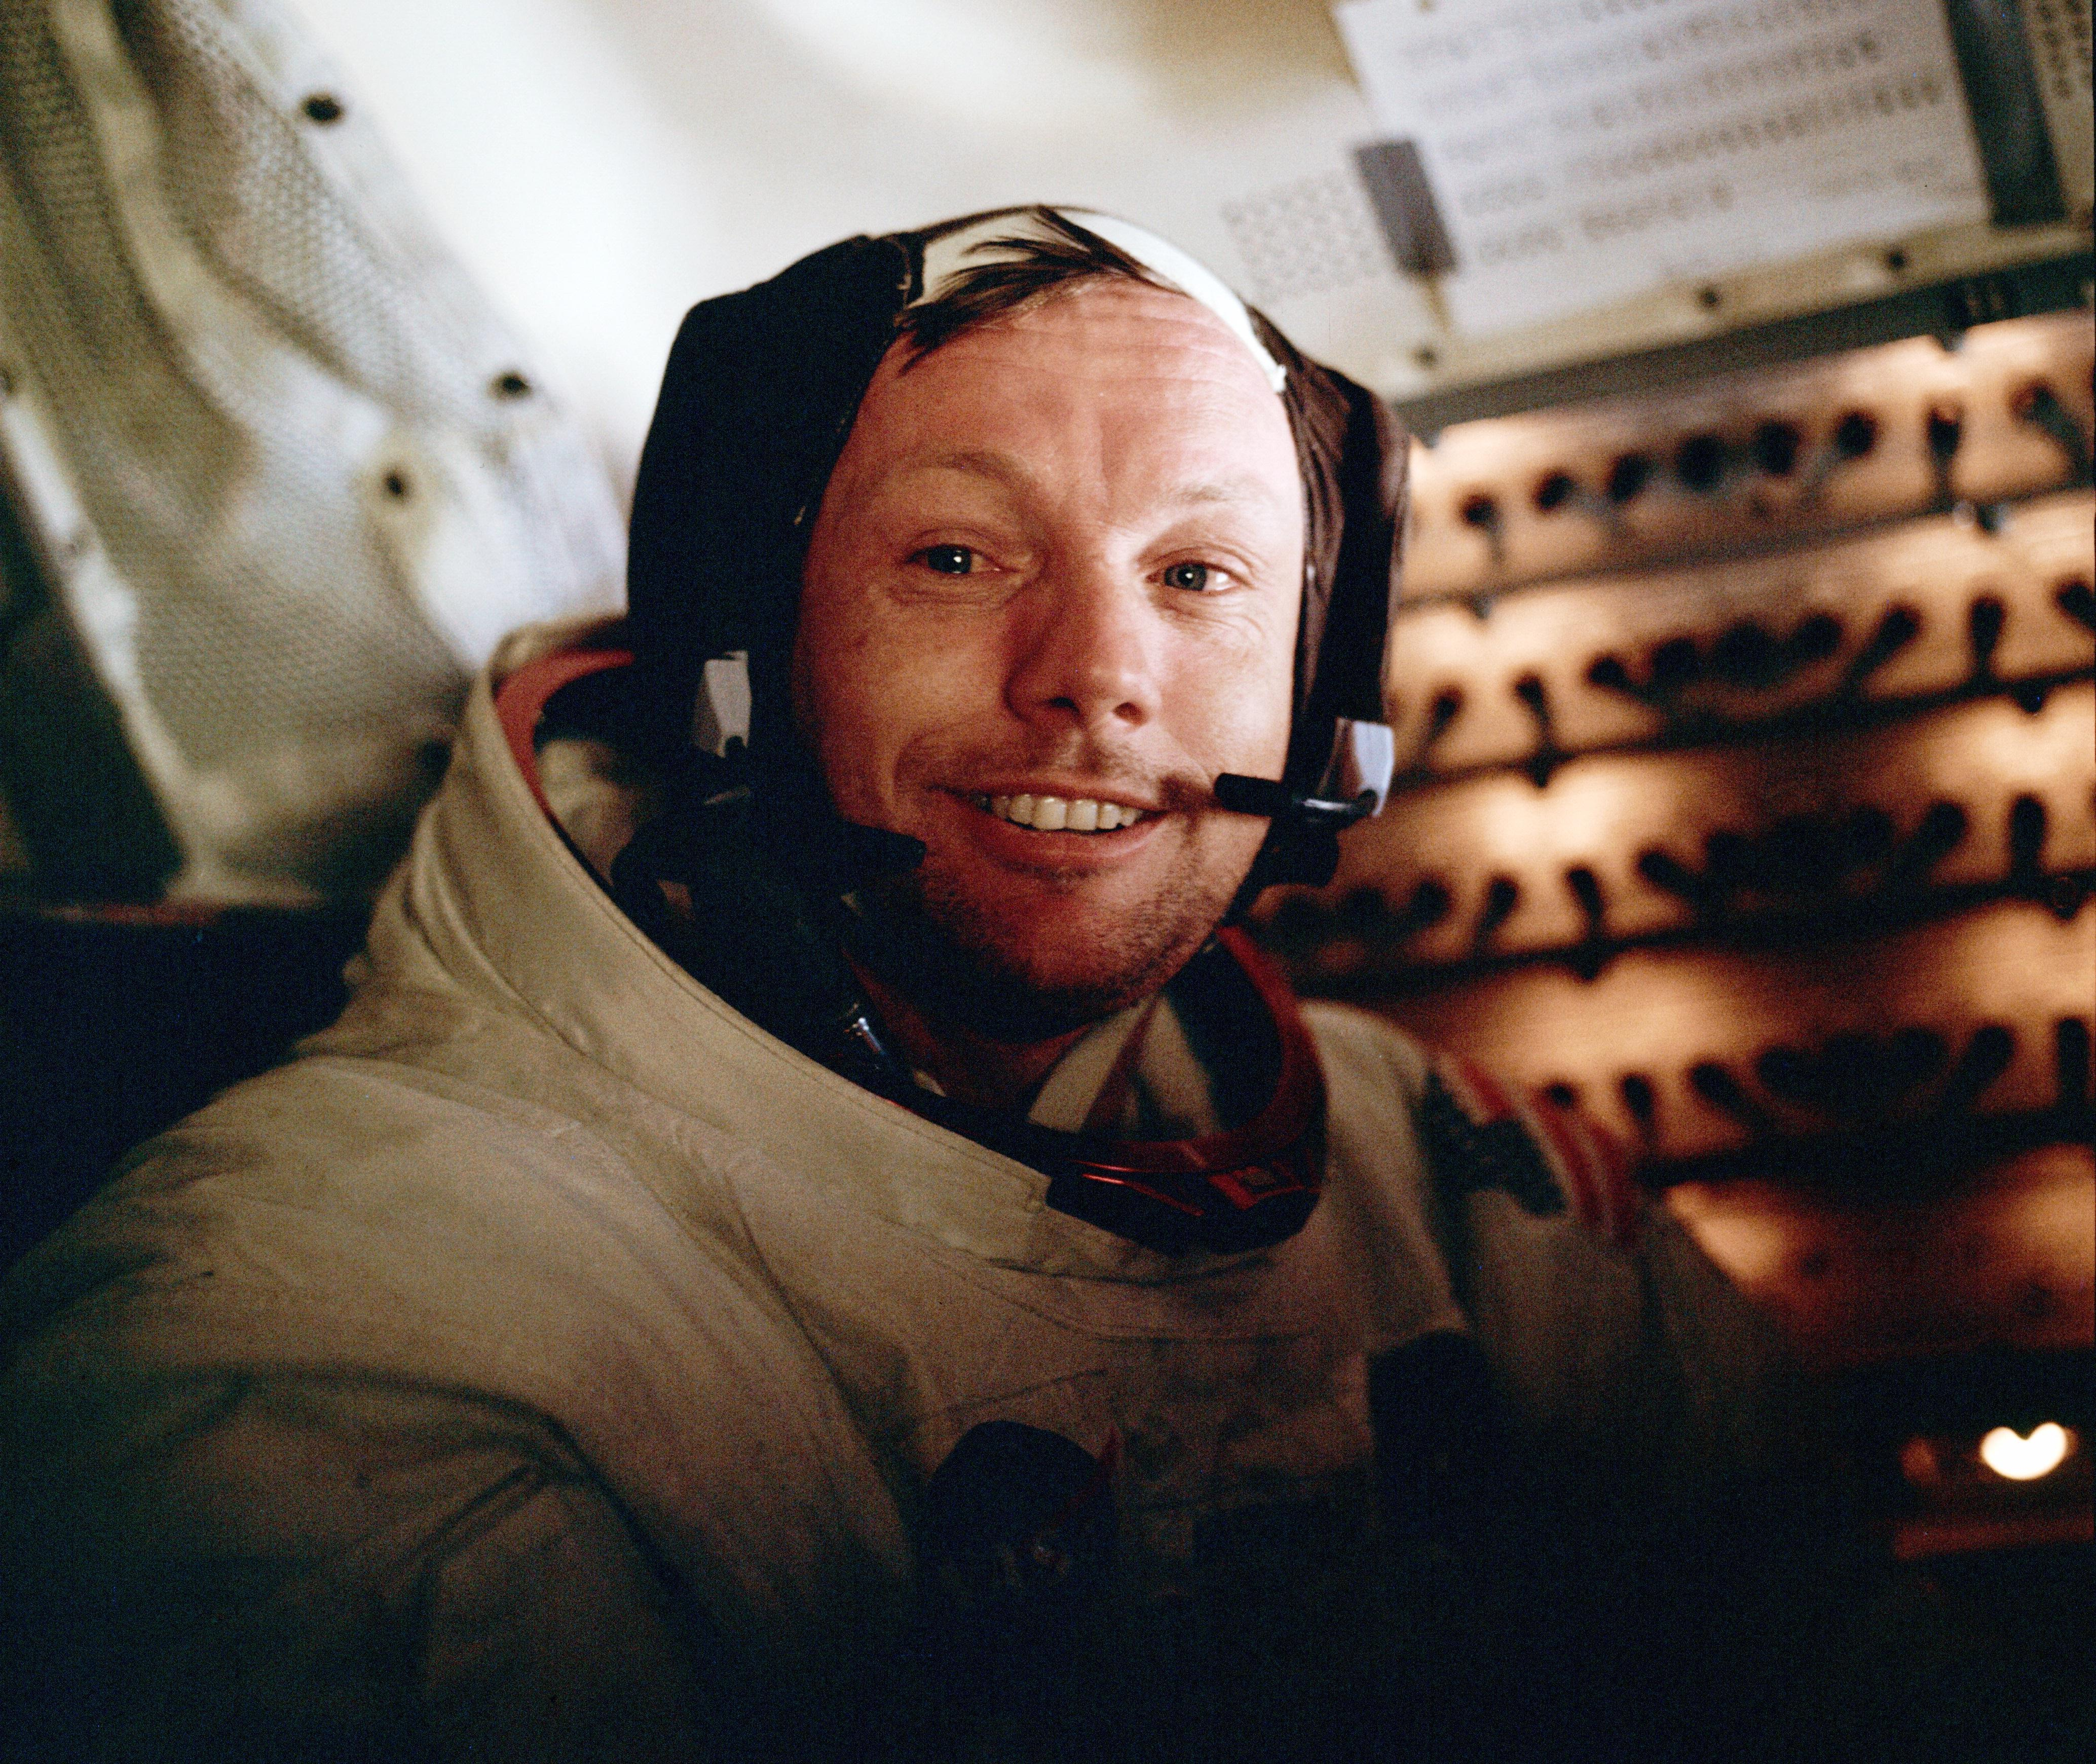 neil armstrong baby girl - photo #39